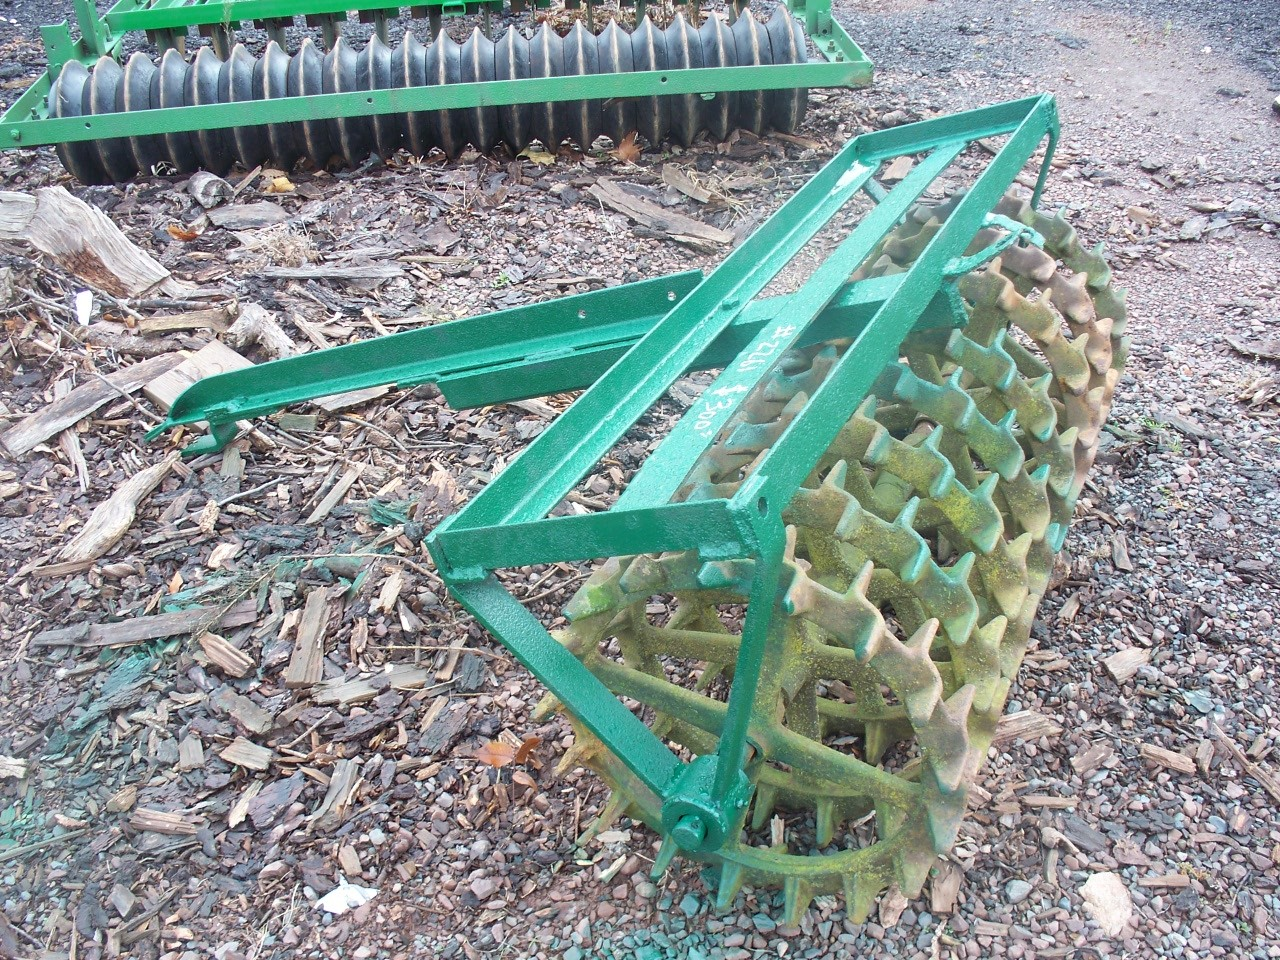 USED 4' Coultepacker - 1 IN STOCK - $300